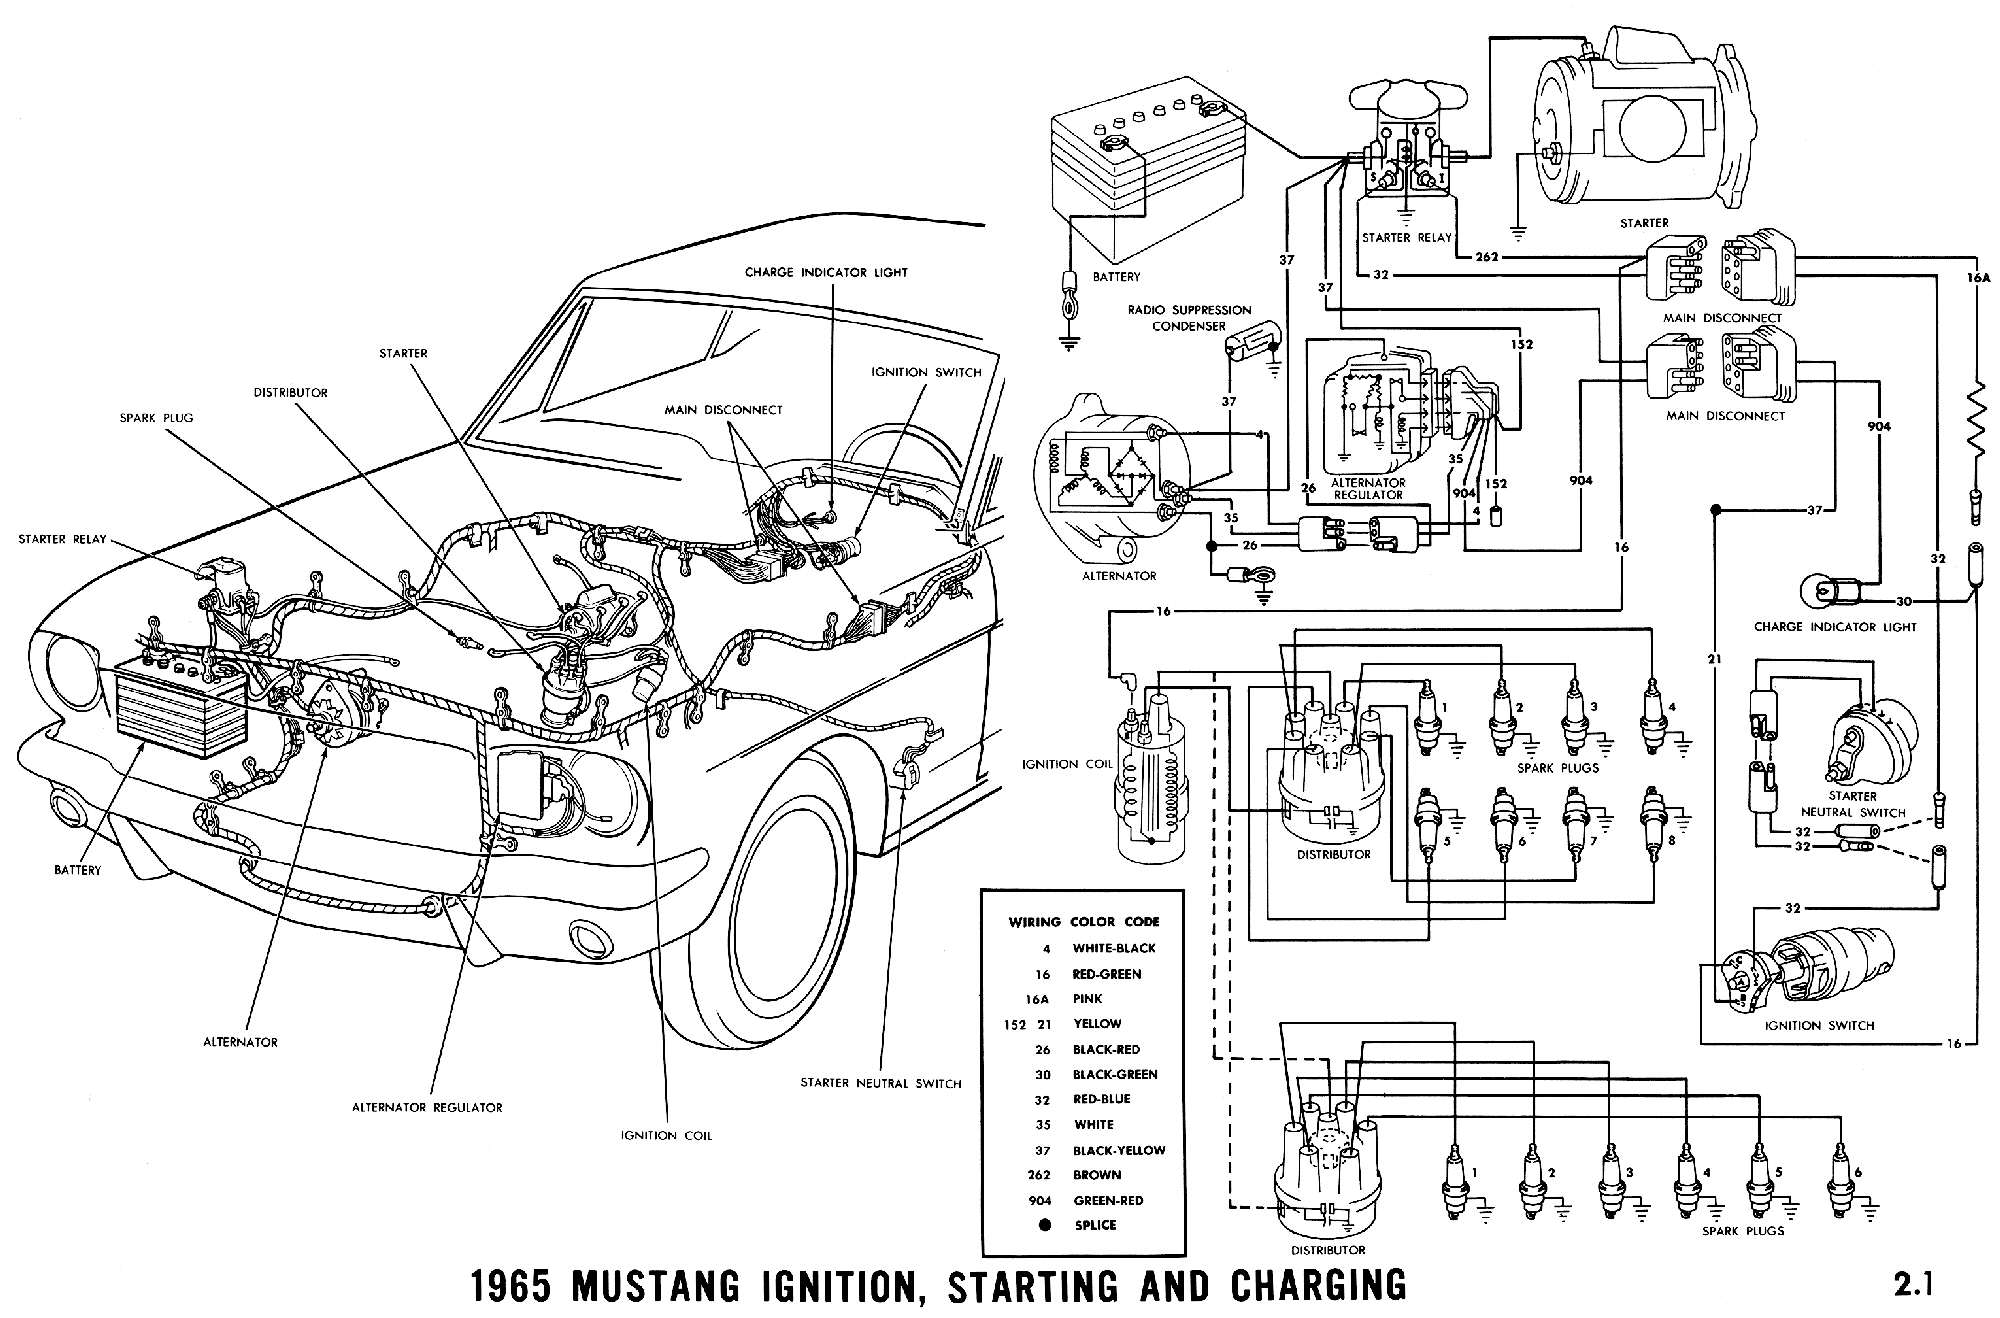 1965c 1965 mustang wiring diagrams average joe restoration mustang wiring harness at crackthecode.co